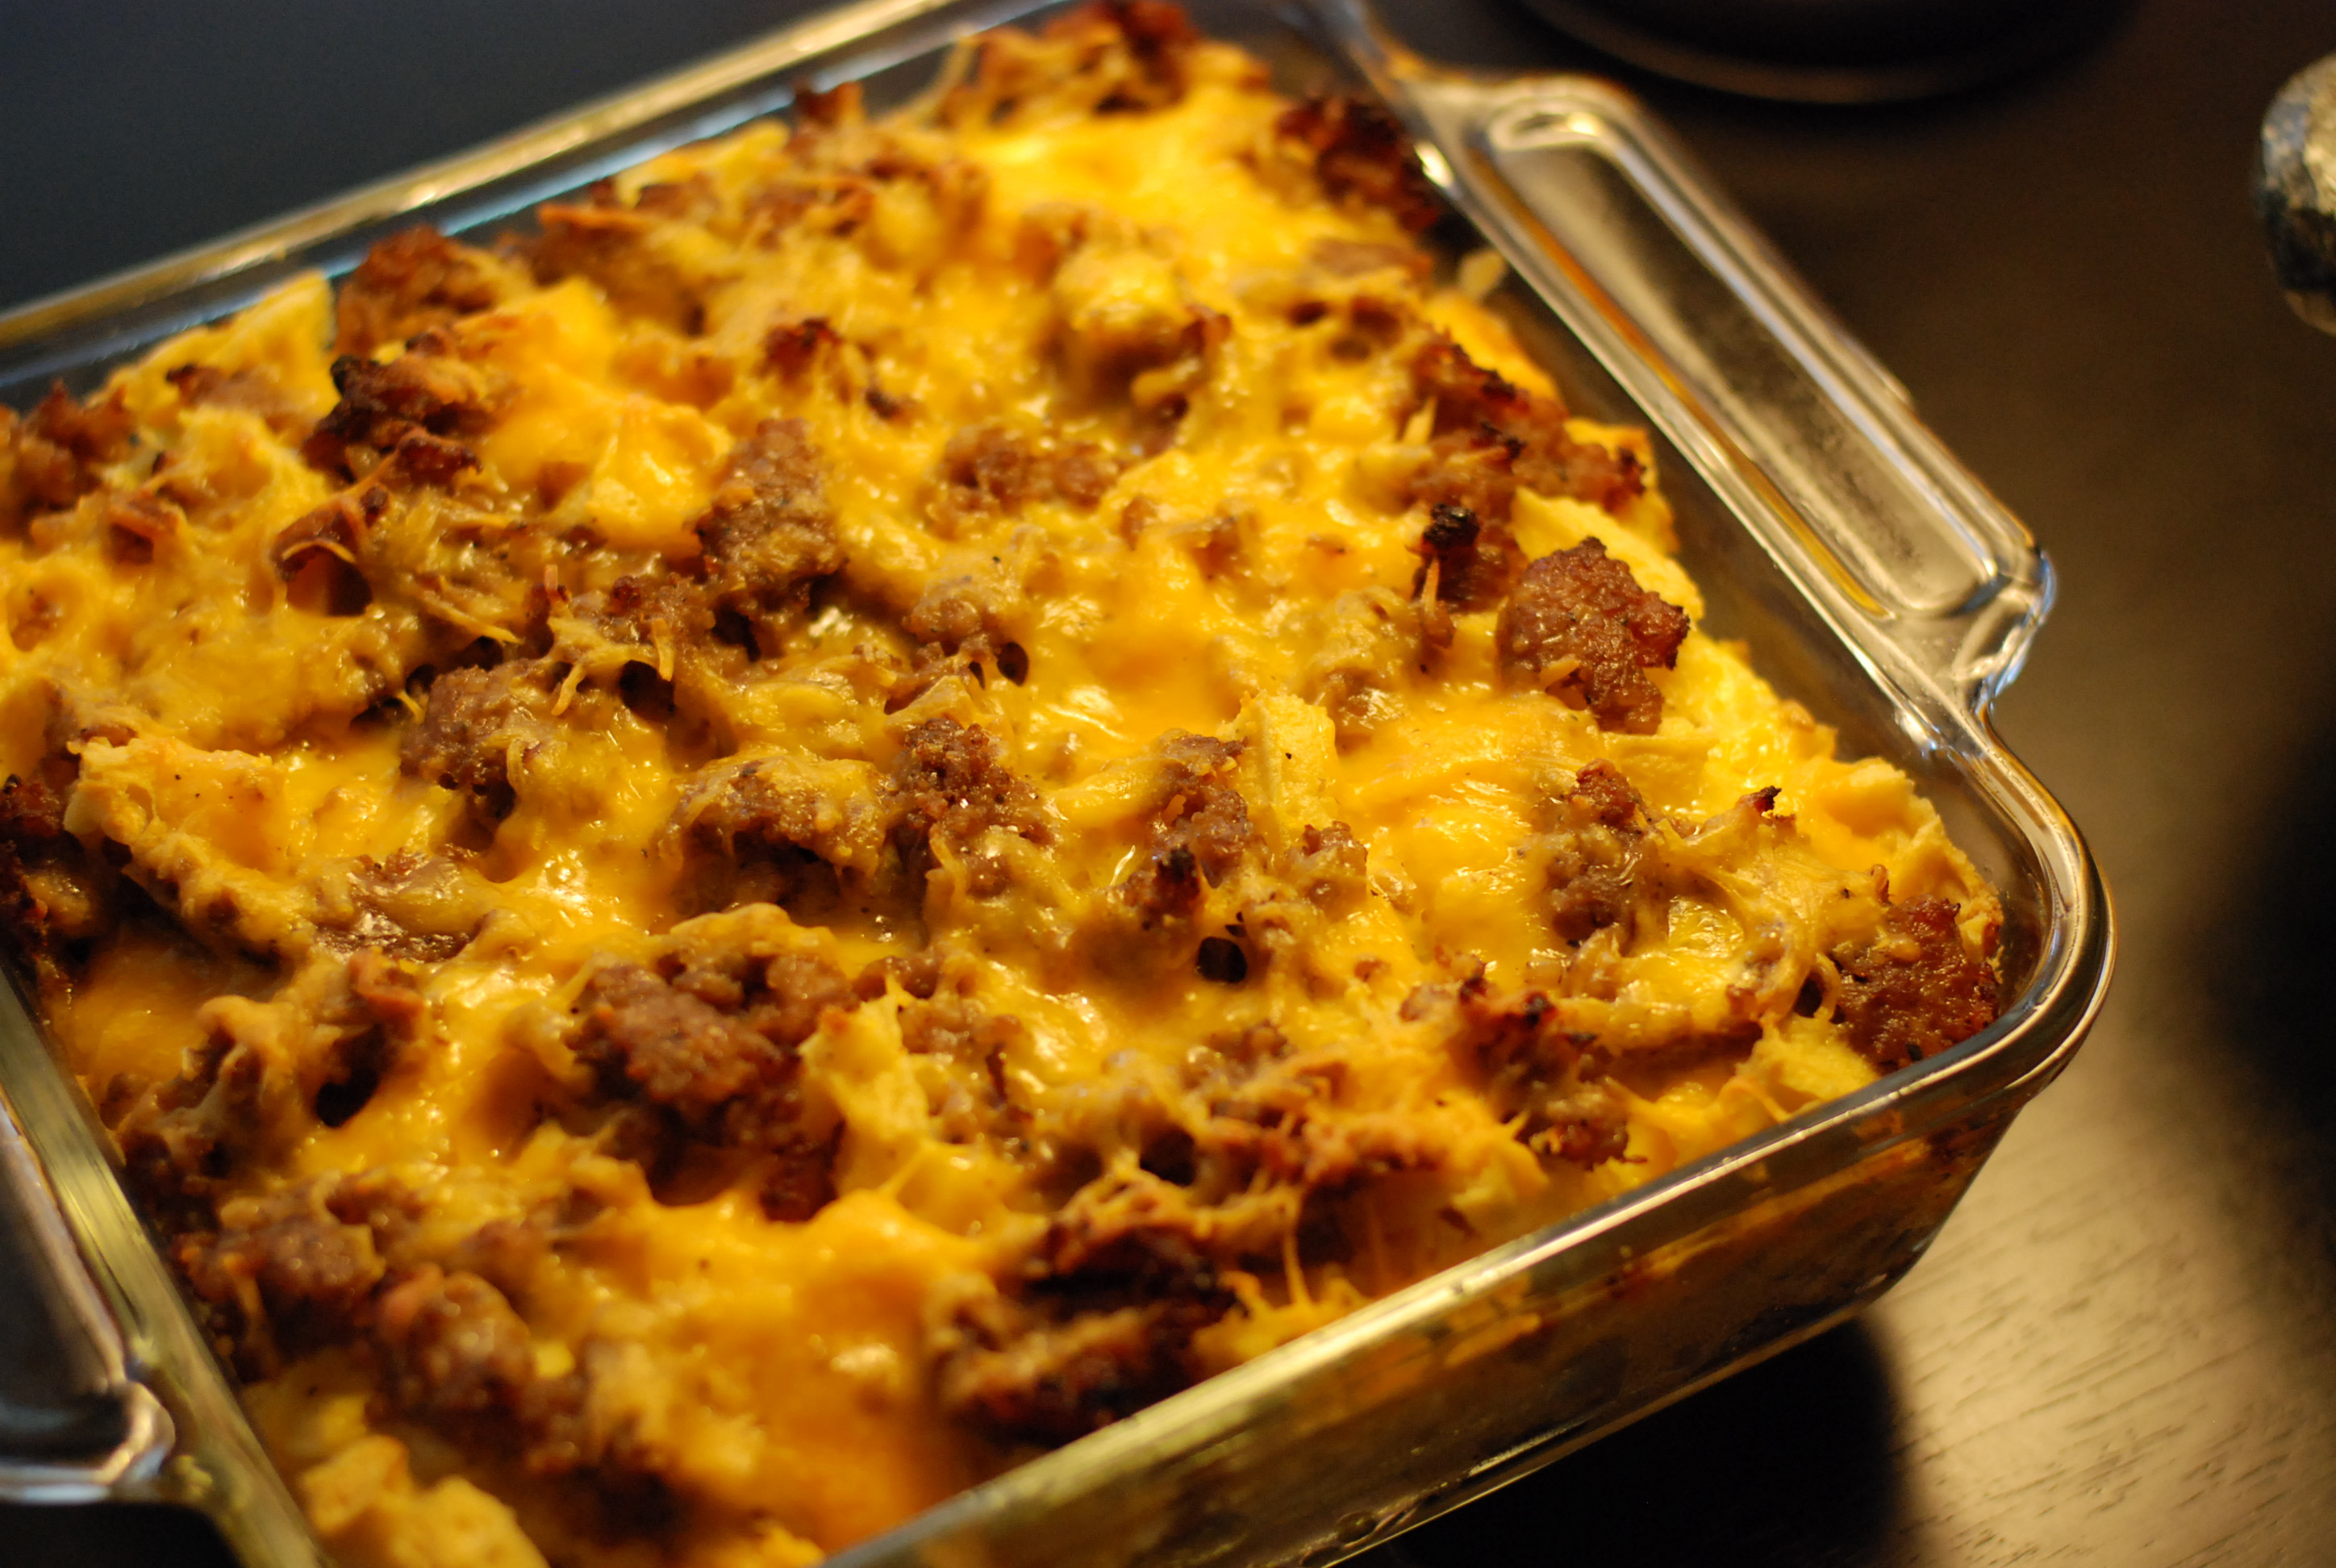 Breakfast Casserole Recipes With Sausage  sausage and waffle breakfast casserole